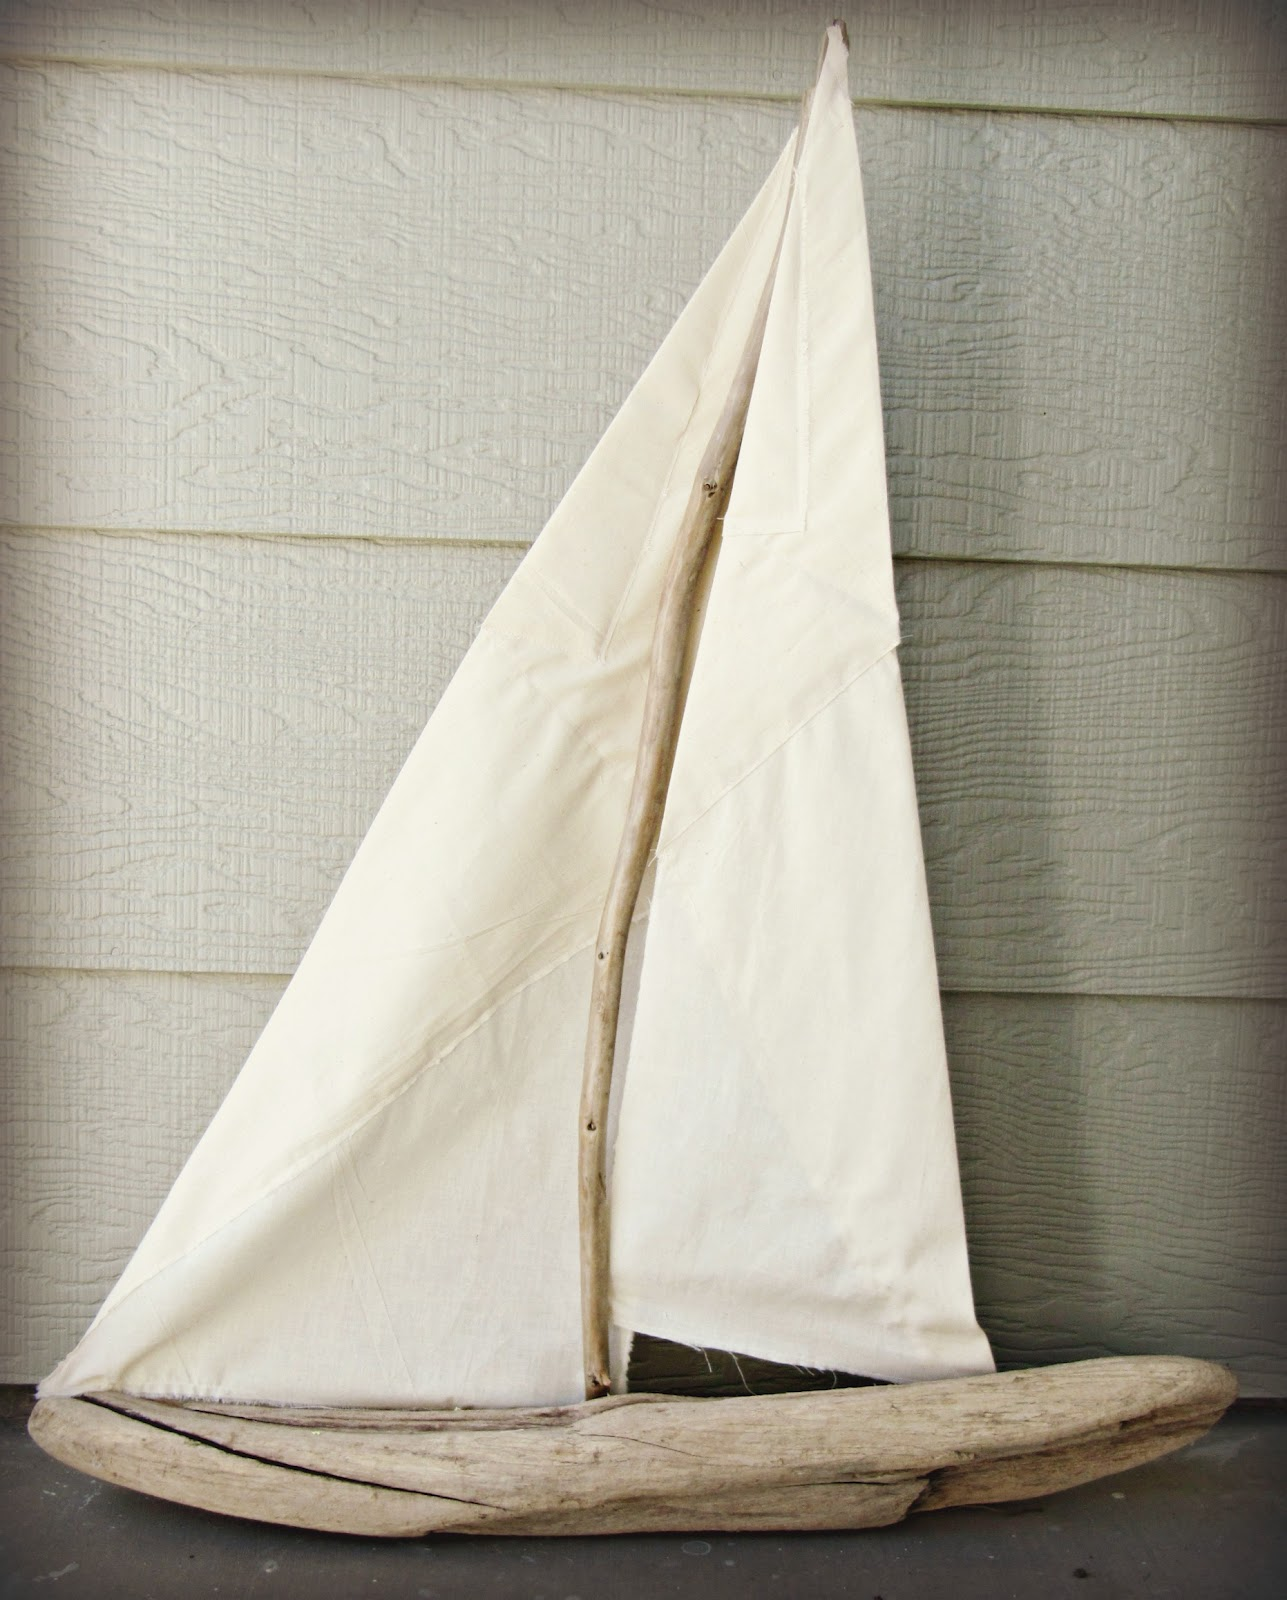 Driftwood sailboat the wicker house for Diy driftwood sailboat